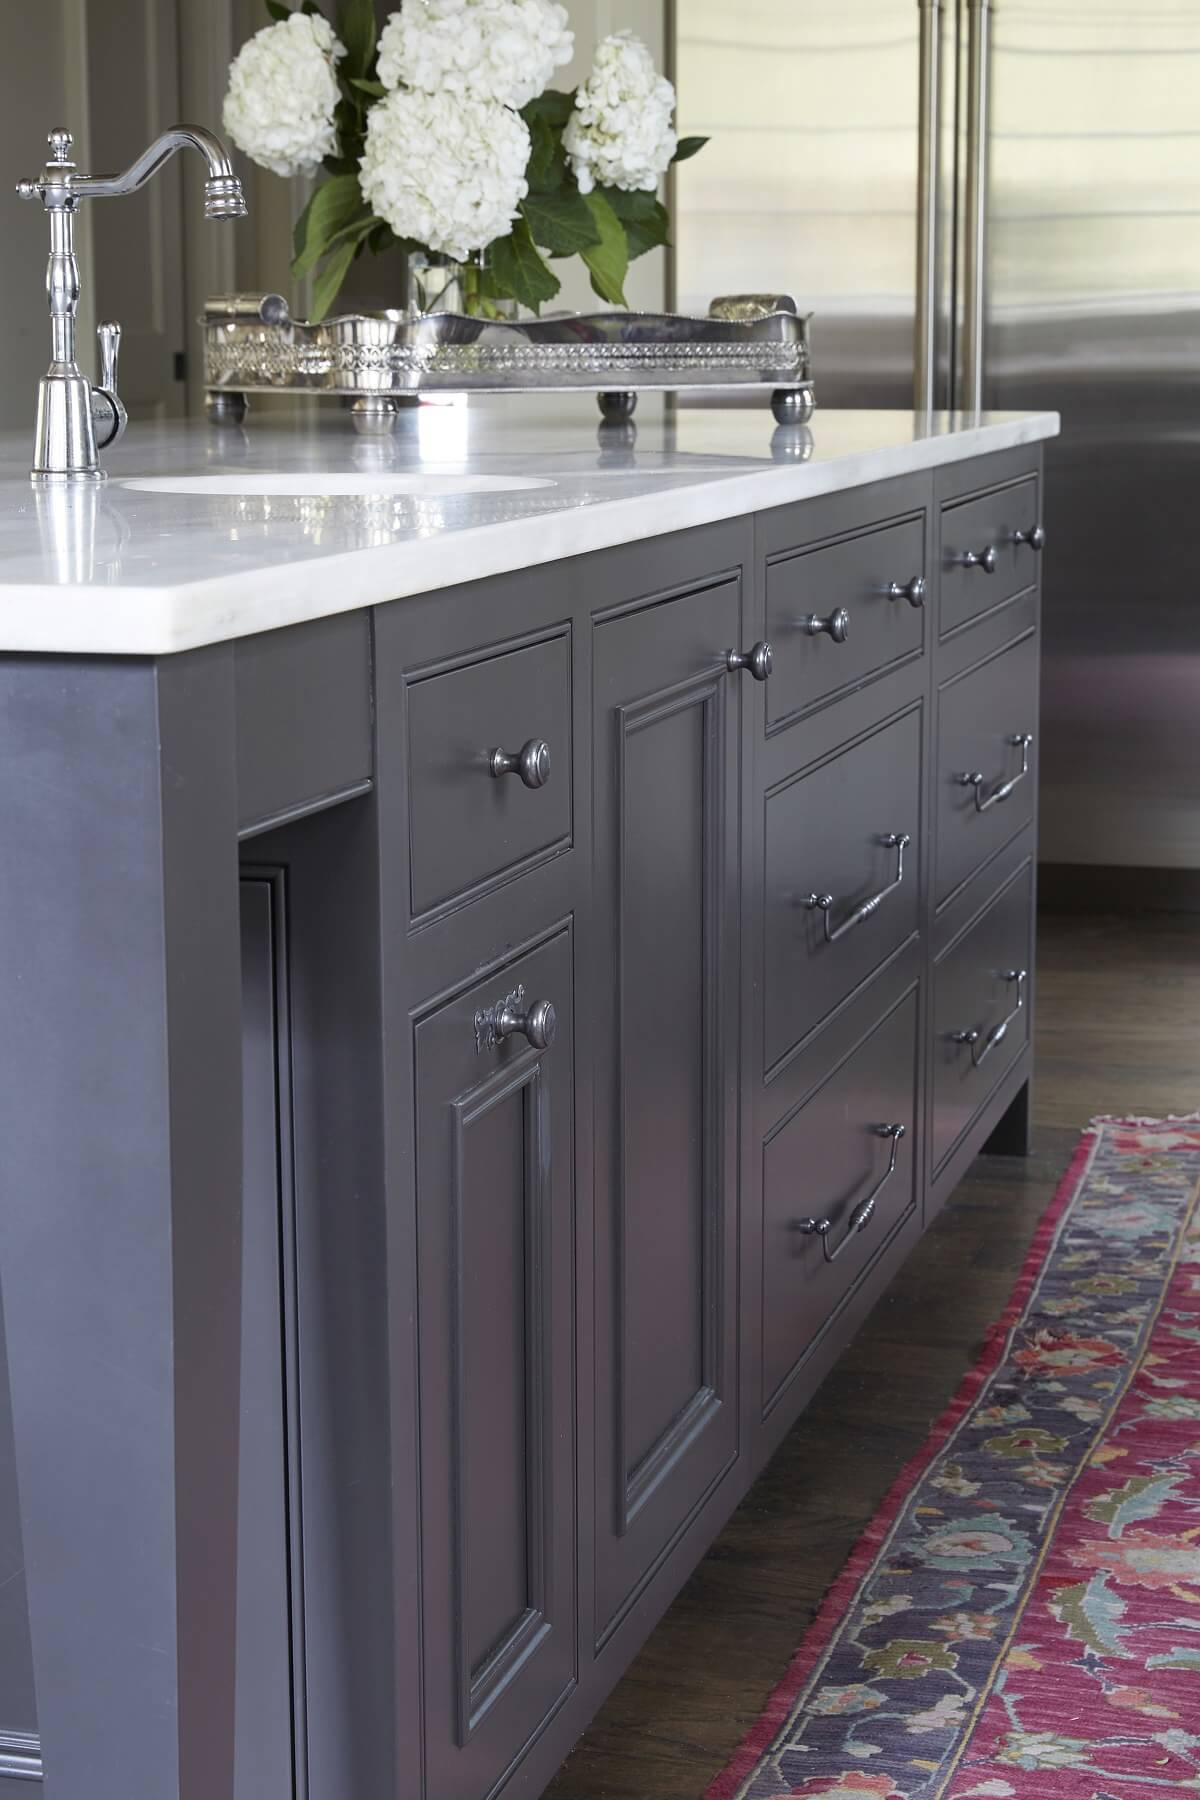 Custom cabinetry and expertly chosen hardware take this island to the next level.